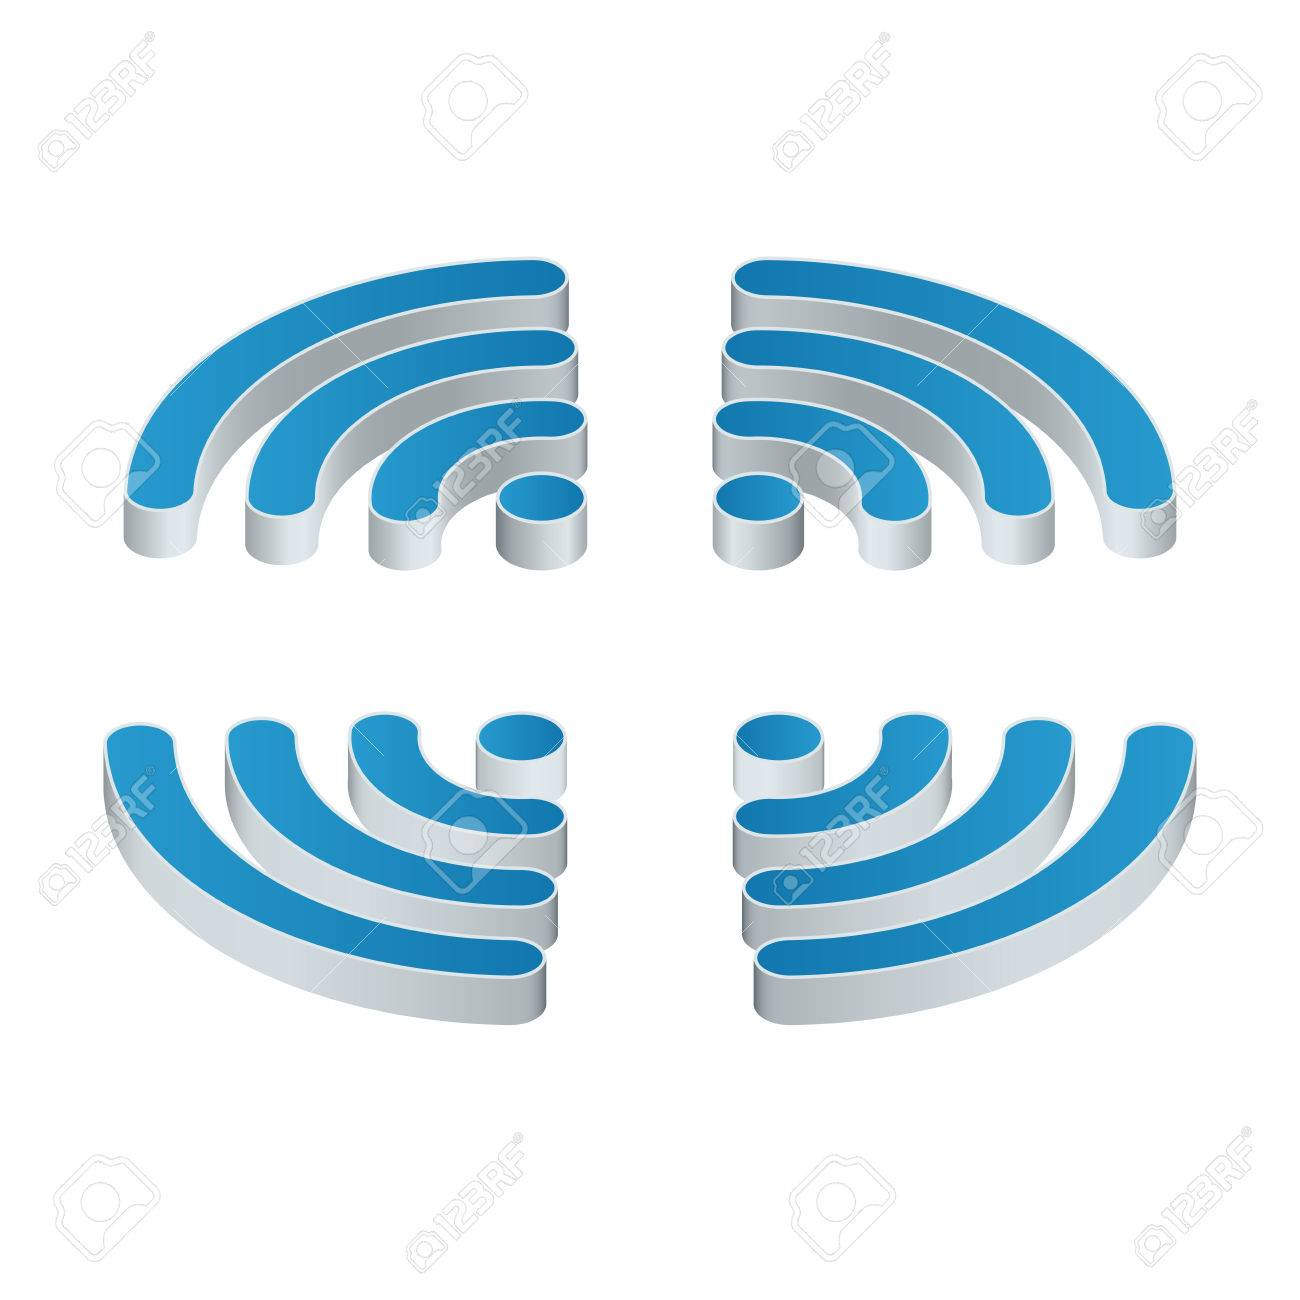 wifi isometric icon set of four wifi icons for business or rh 123rf com free commercial use vectors no attribution free commercial use vector clipart